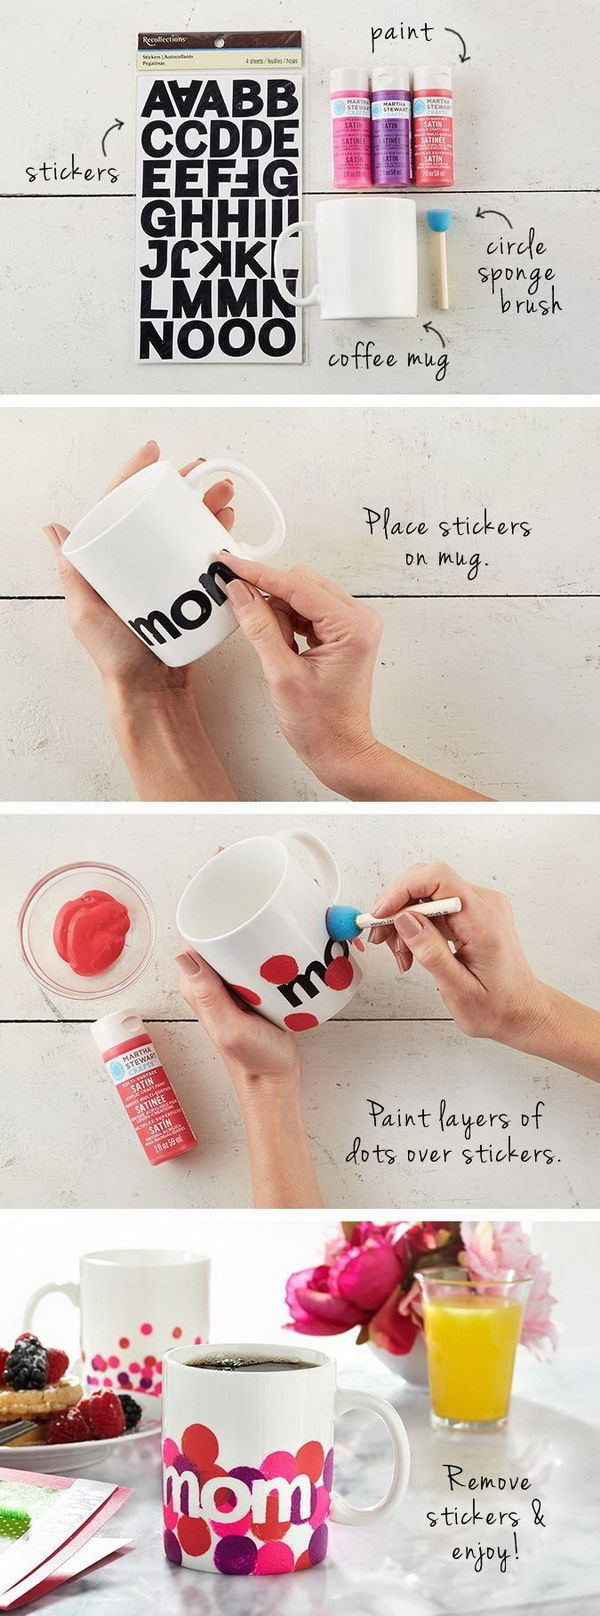 DIY Personalised Mugs - Heartfelt, Homemade DIY Gifts for Mums. A homemade gift shows our mum that we think she is worth the time and effort it takes to craft a present for her. You can never go wrong with a handmade gift for her, for mums and mothers